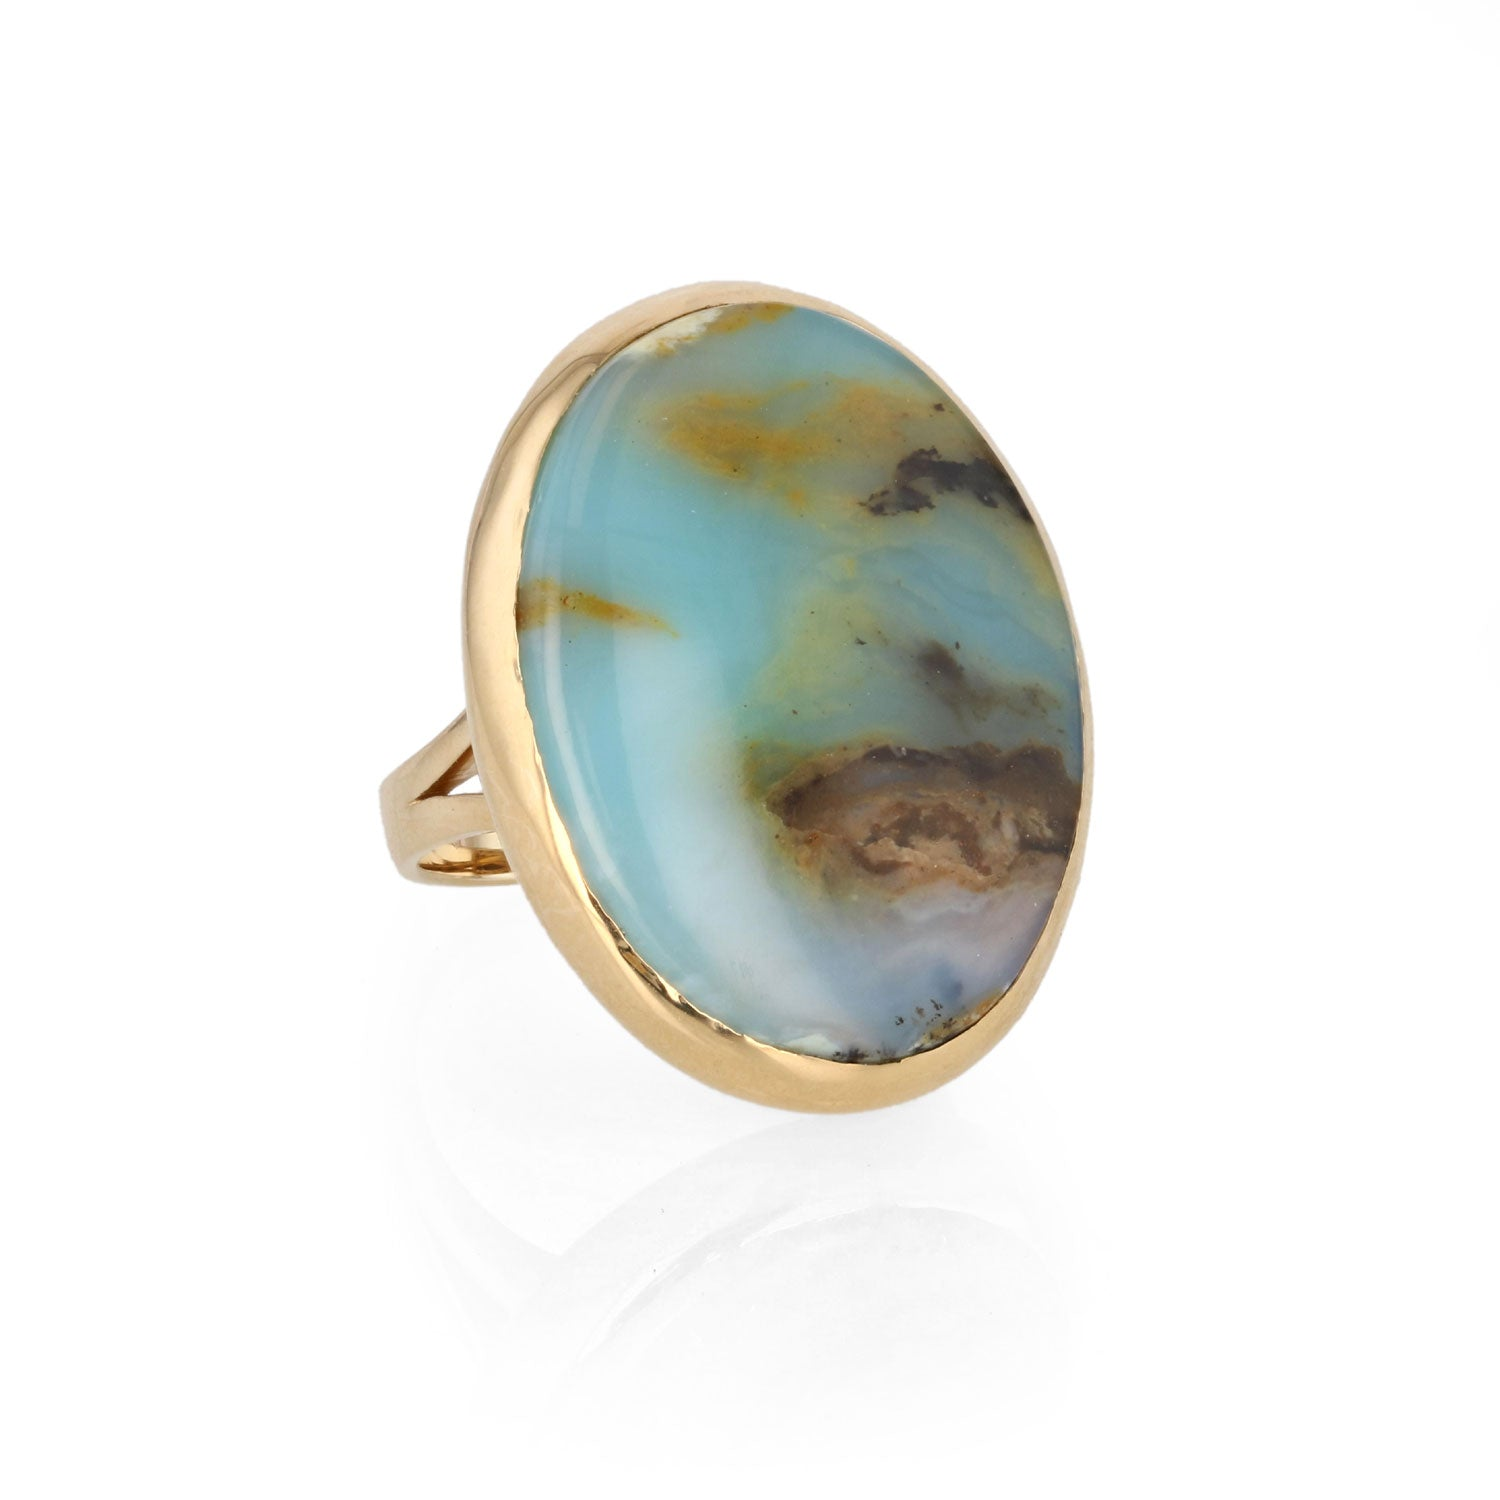 Peruvian opal set in 18K yellow Gold